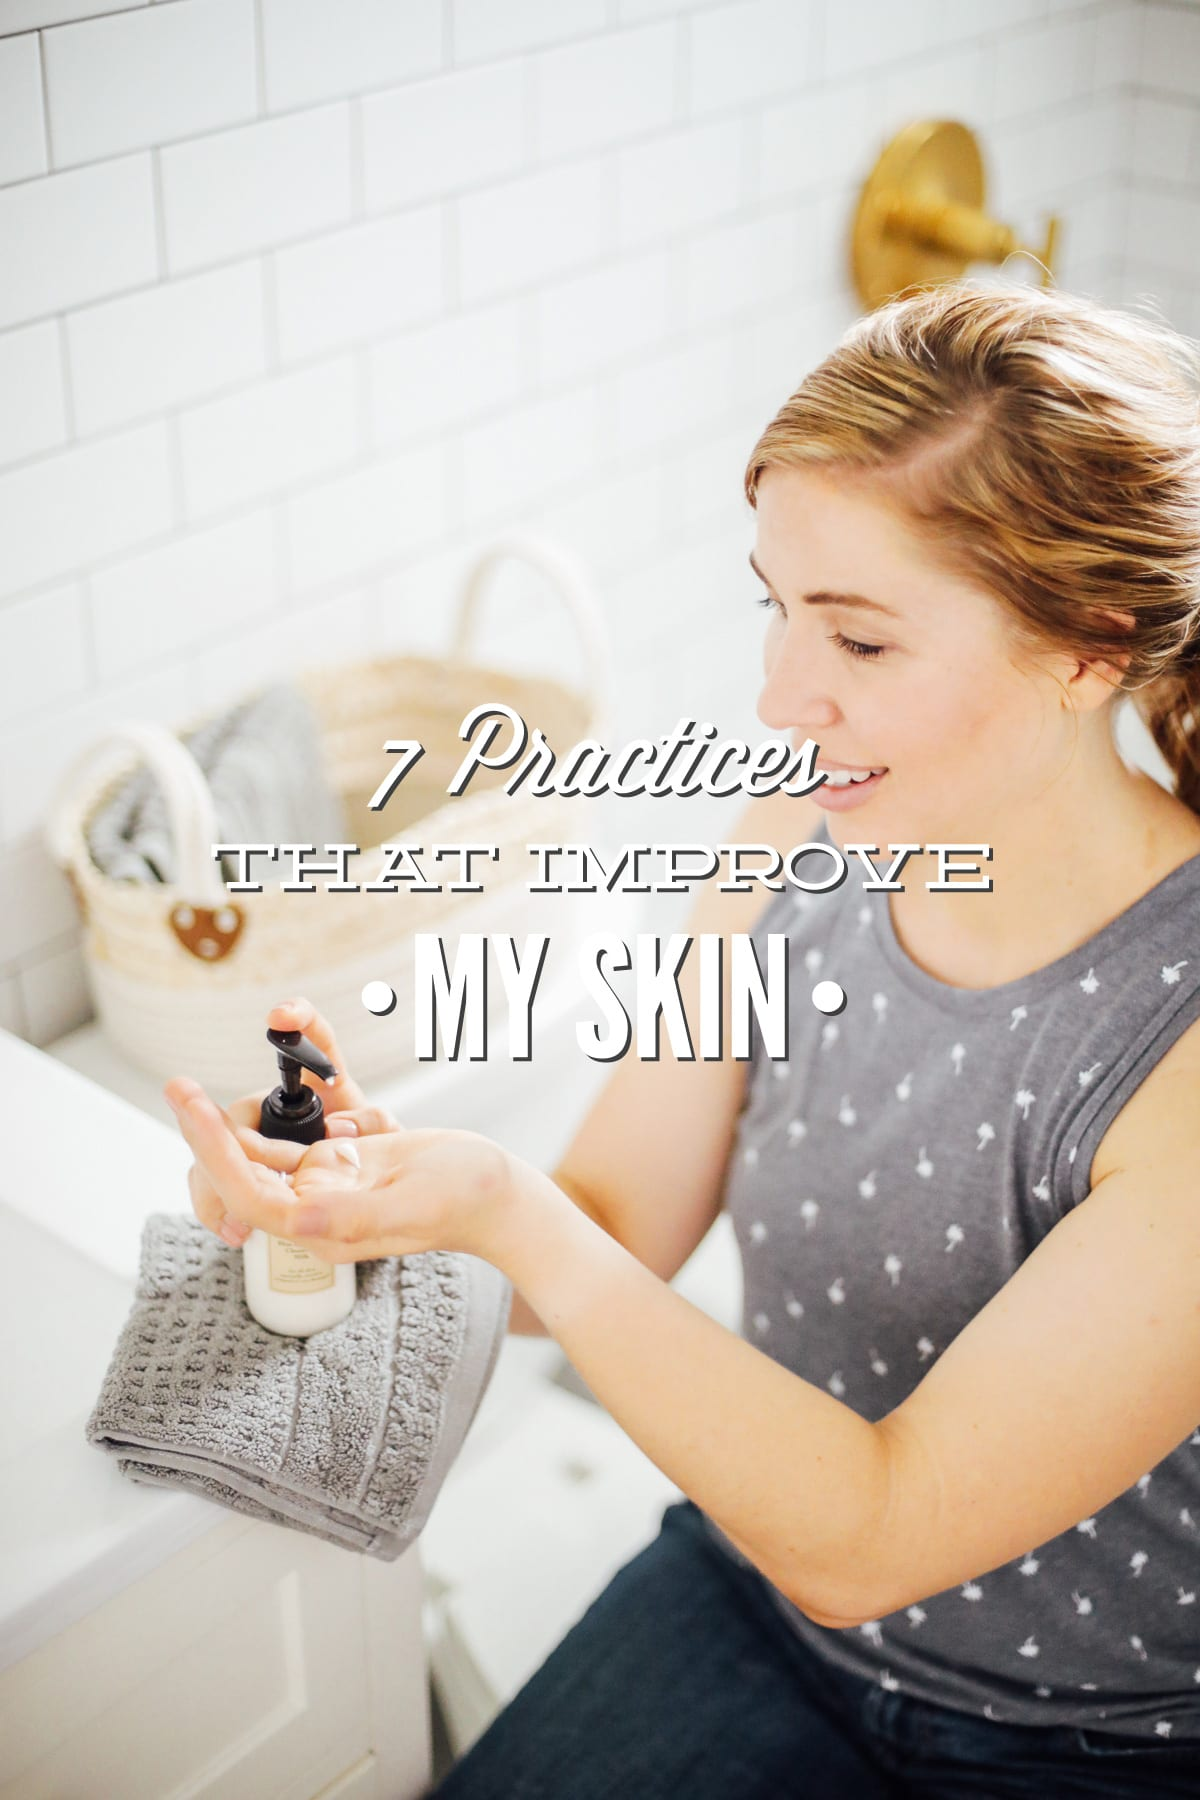 7 Practices That Improved My Skin